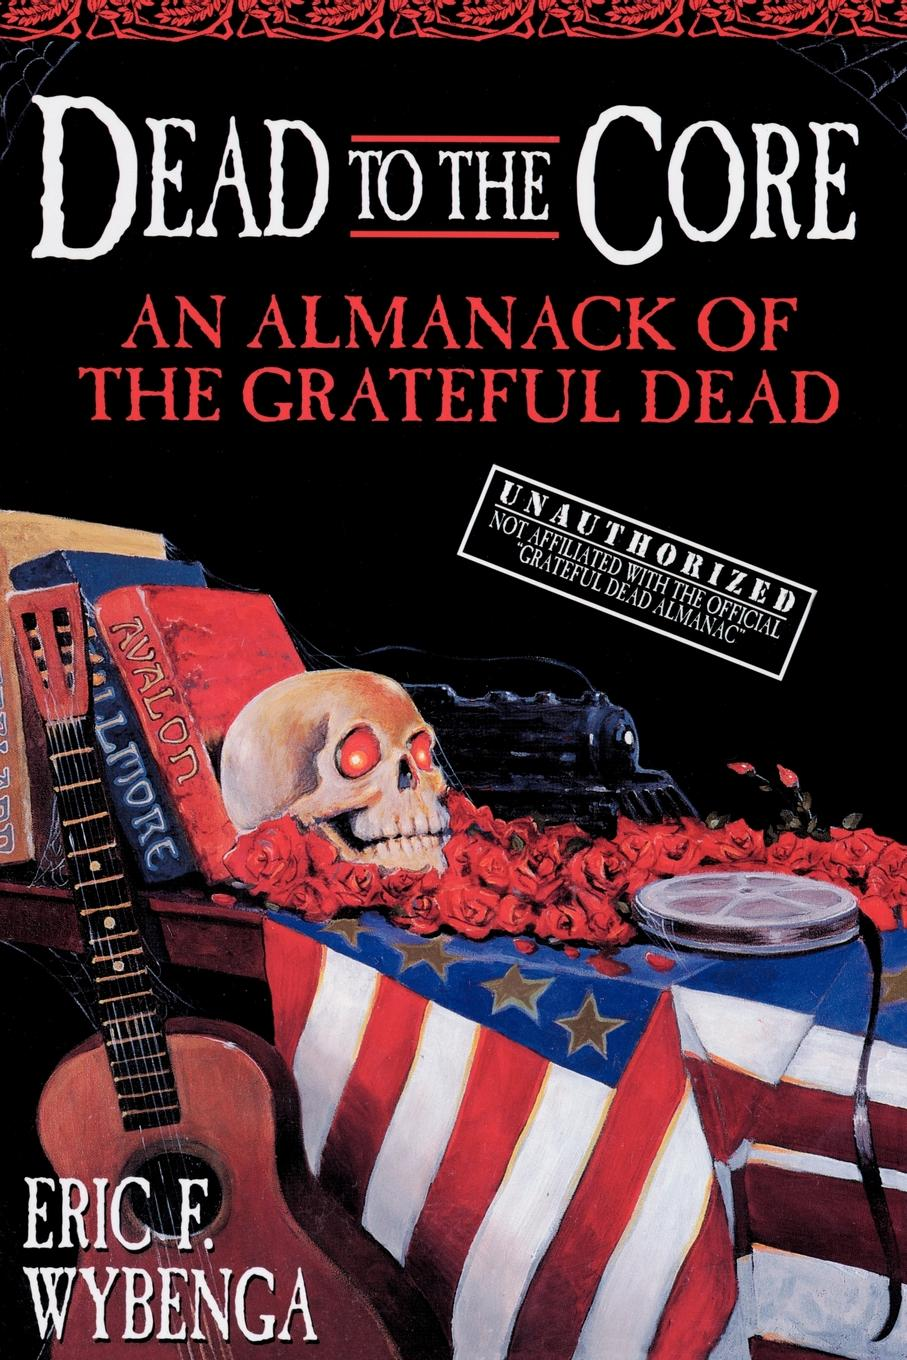 Eric F. Wybenga, E Wybenga Dead to the Core. An Almanack of the Grateful Dead l a dead